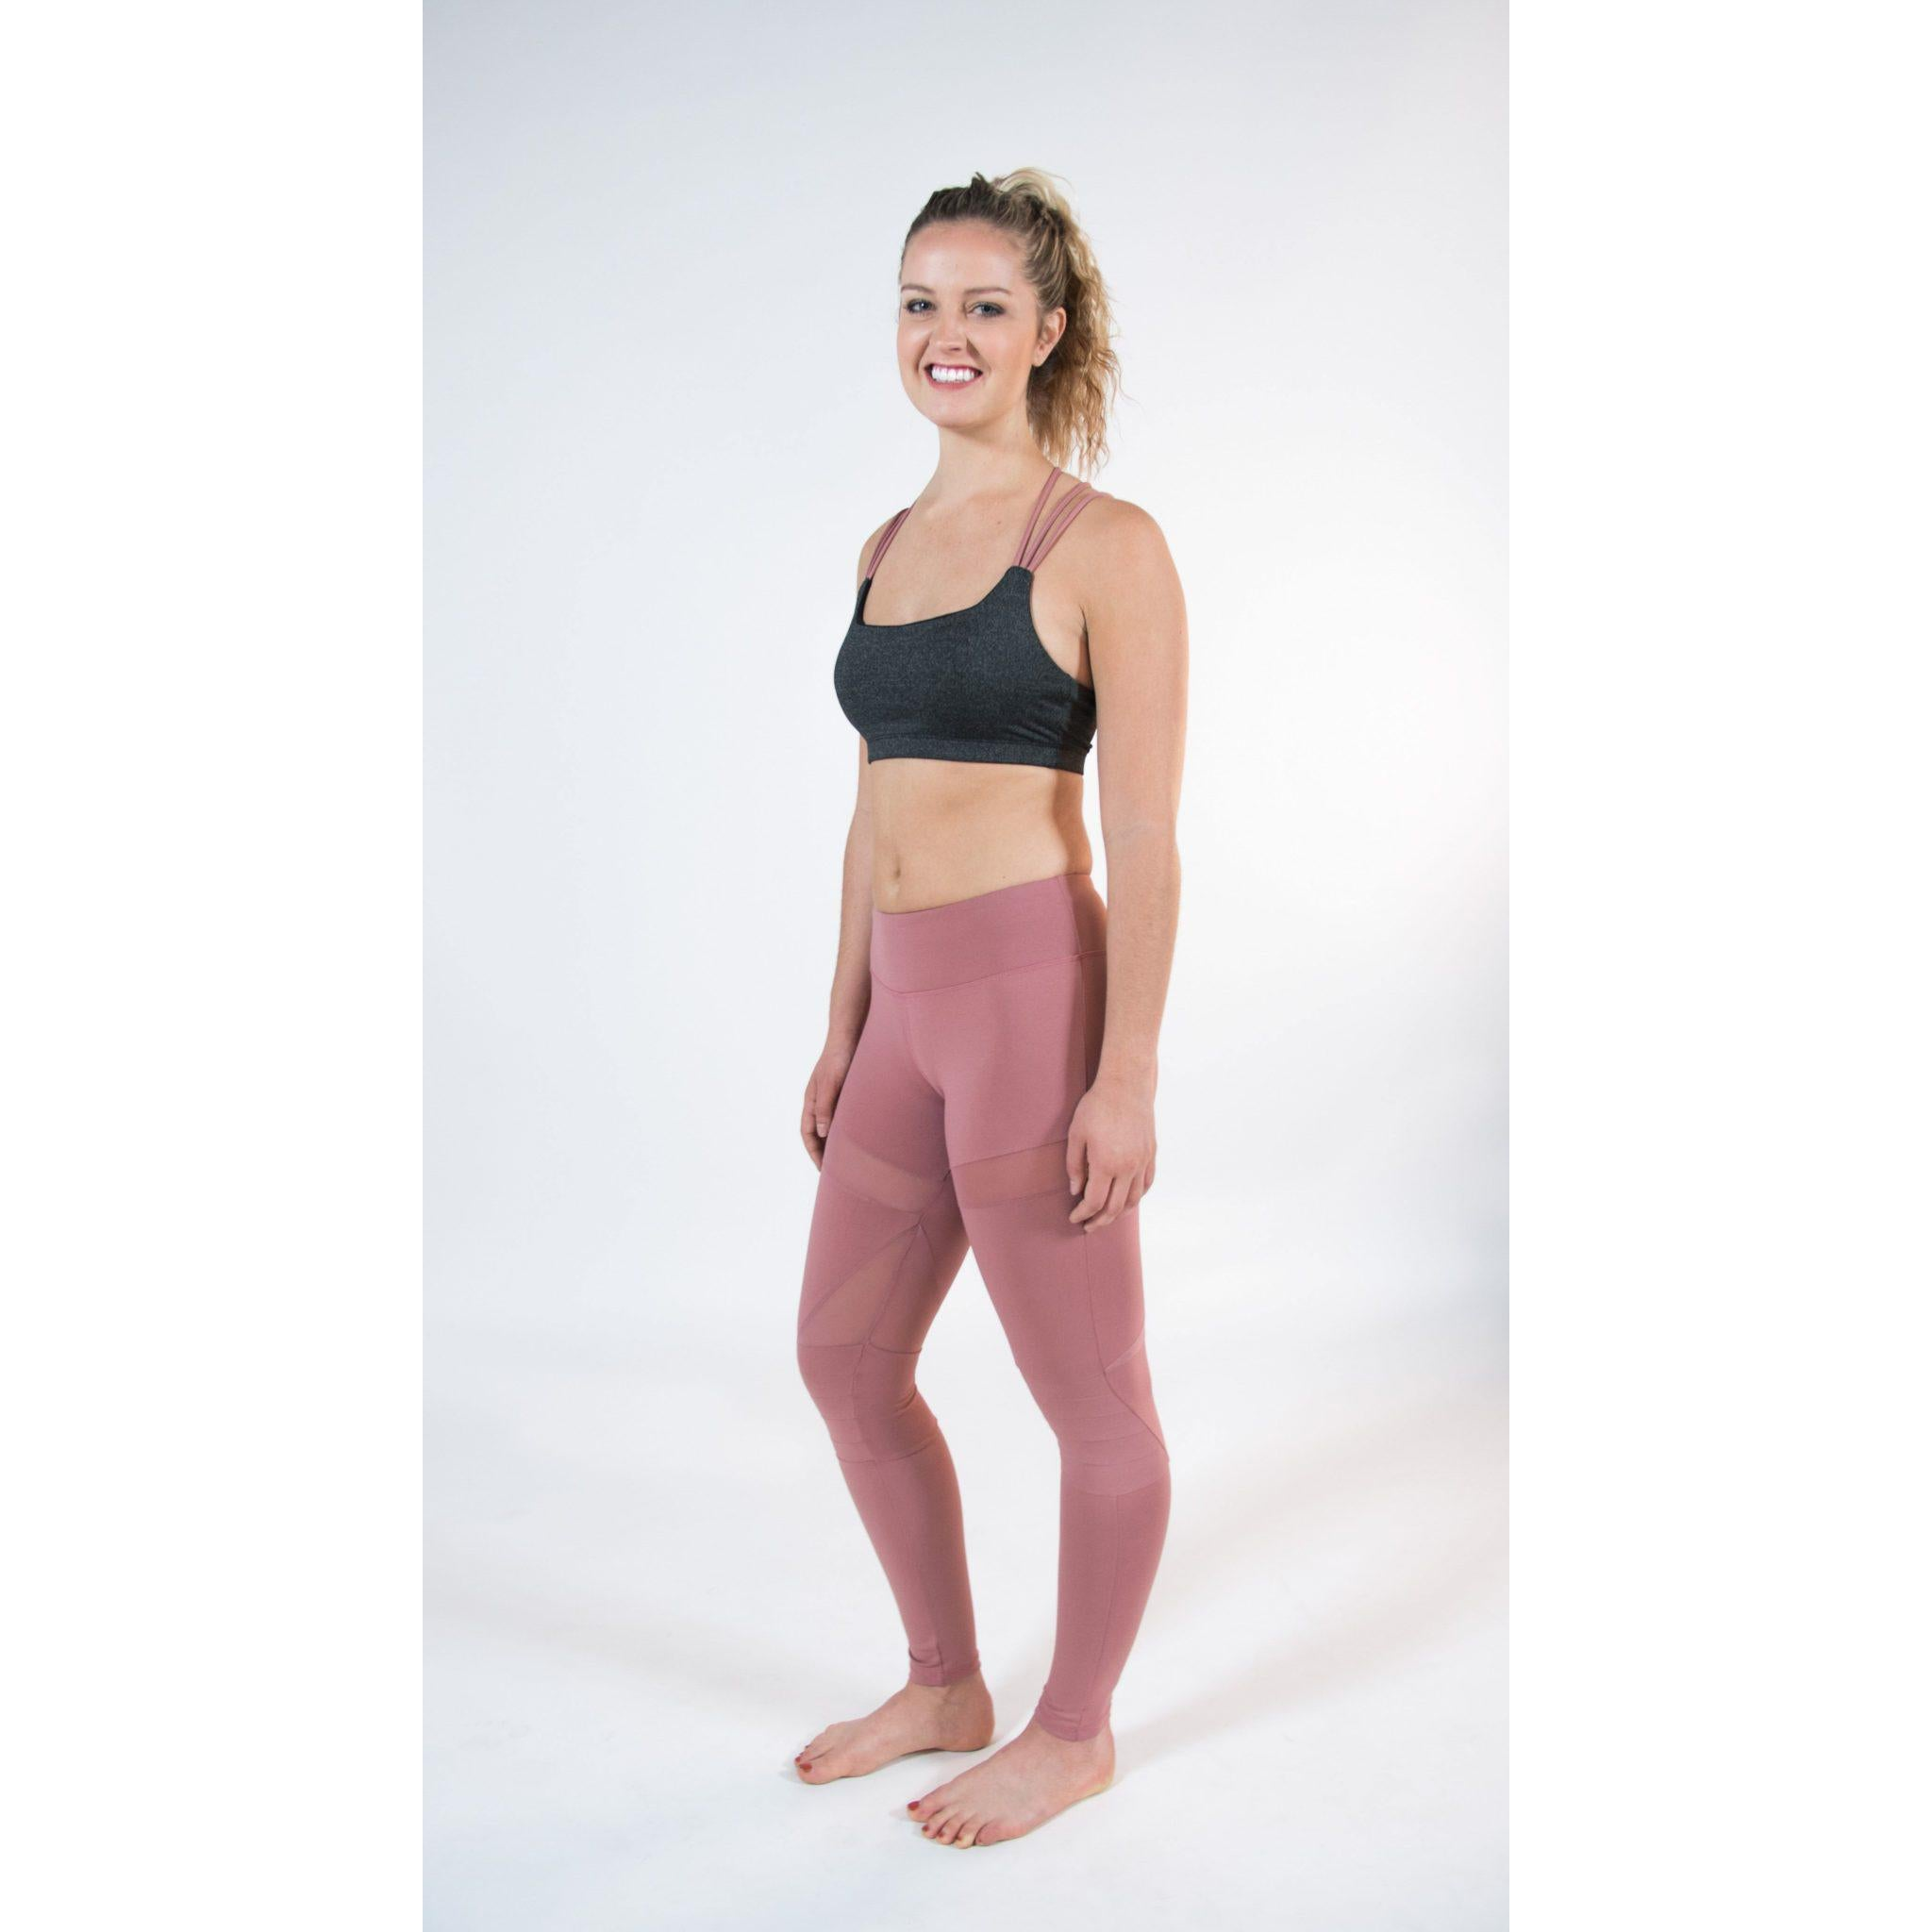 Rose Bra - Brooke Taylor Active